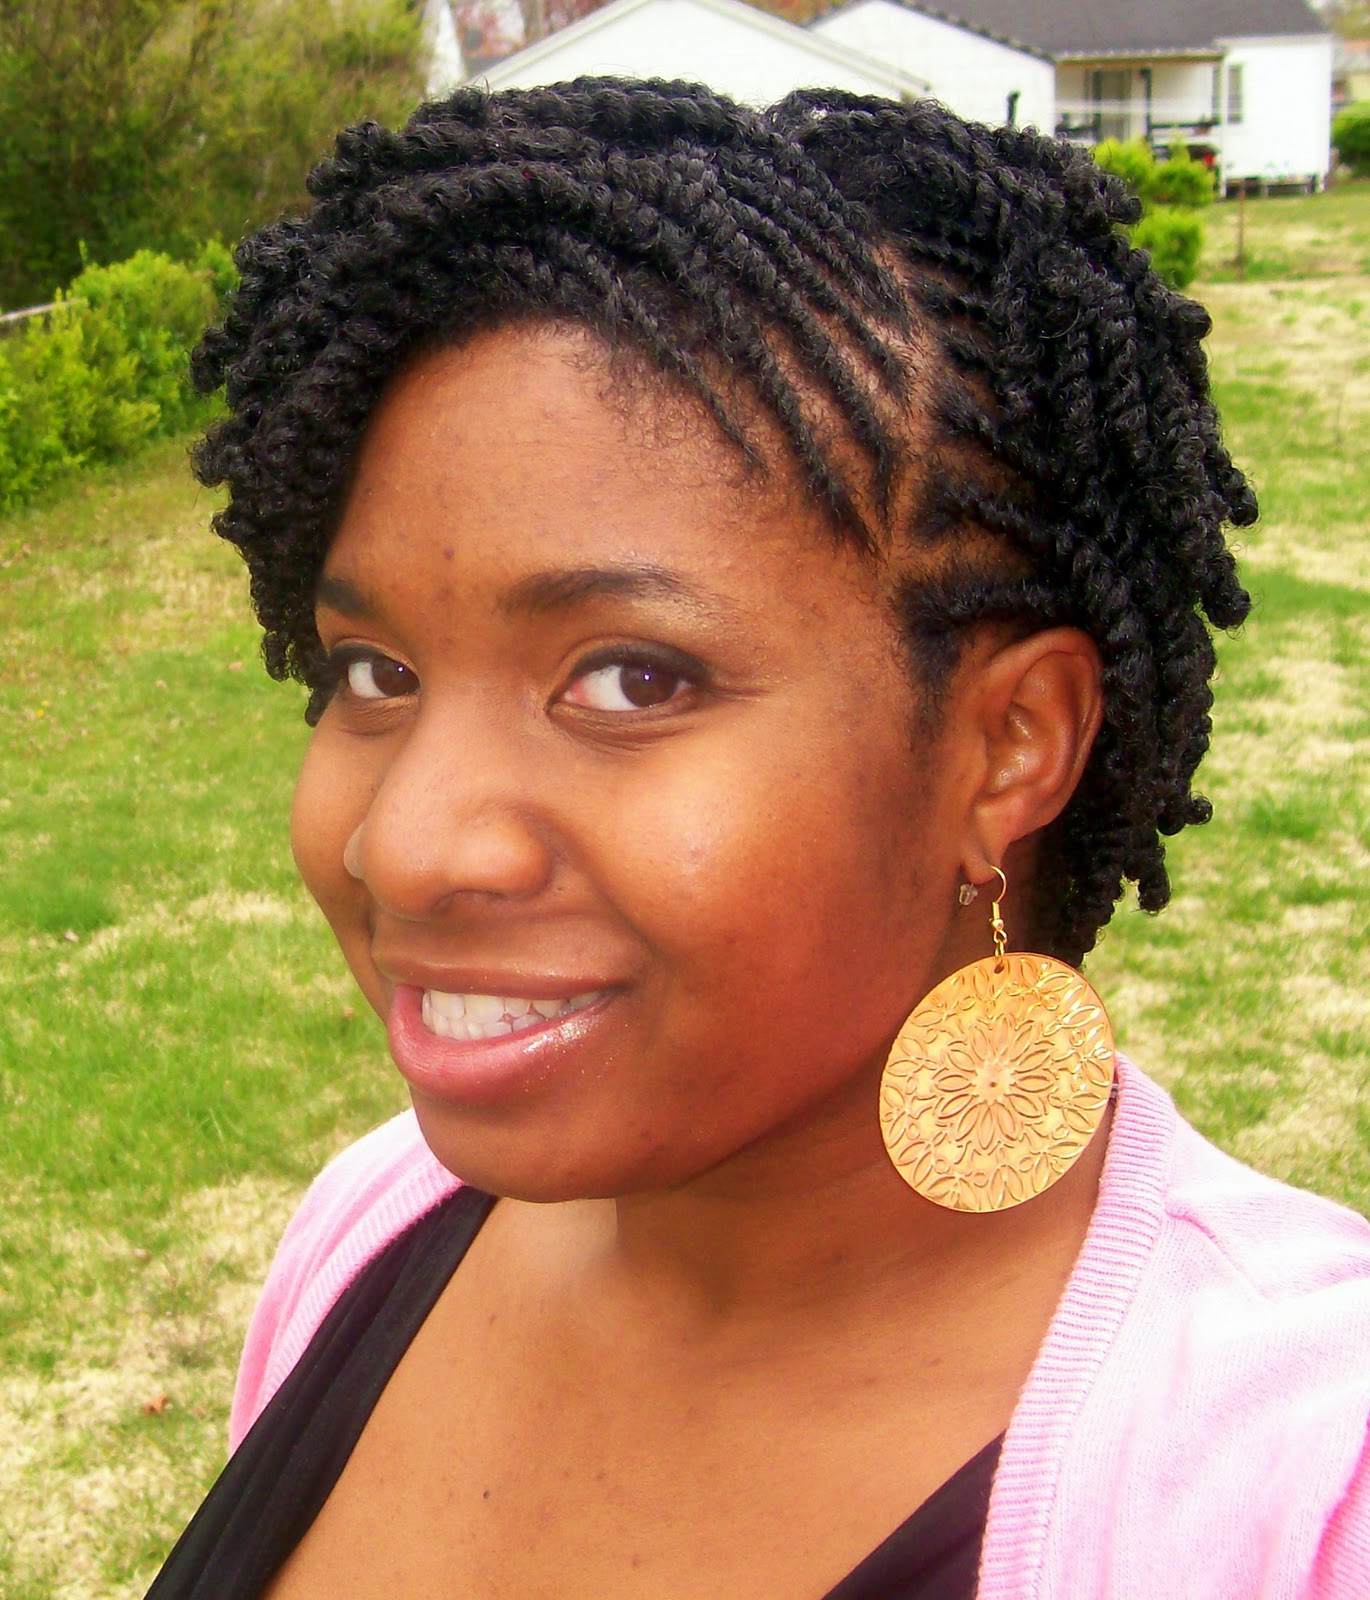 Astounding 1000 Images About Natural Hairstyles On Pinterest Natural Short Hairstyles For Black Women Fulllsitofus